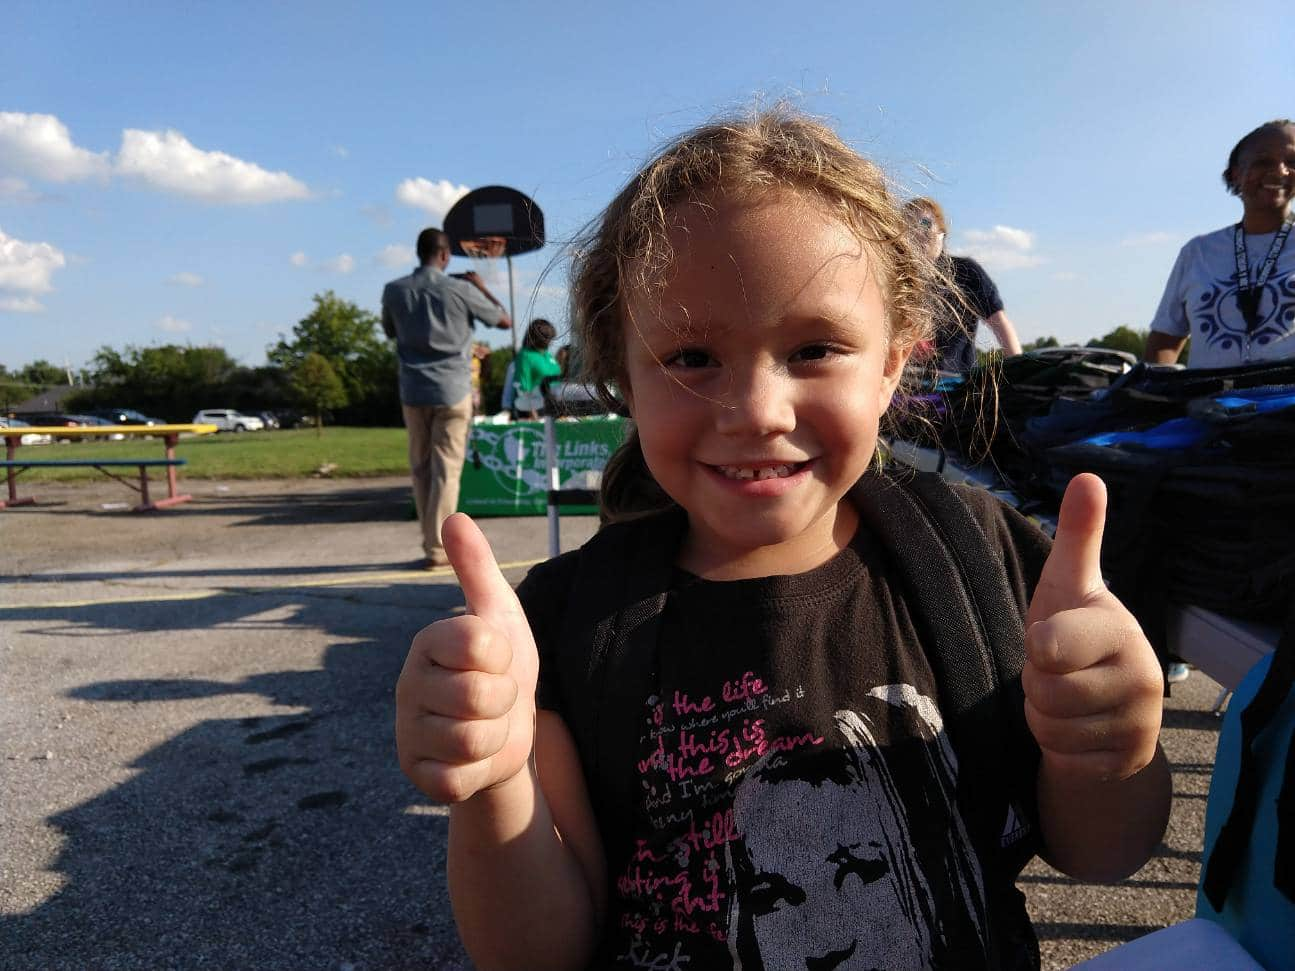 Child with Thumbs Up